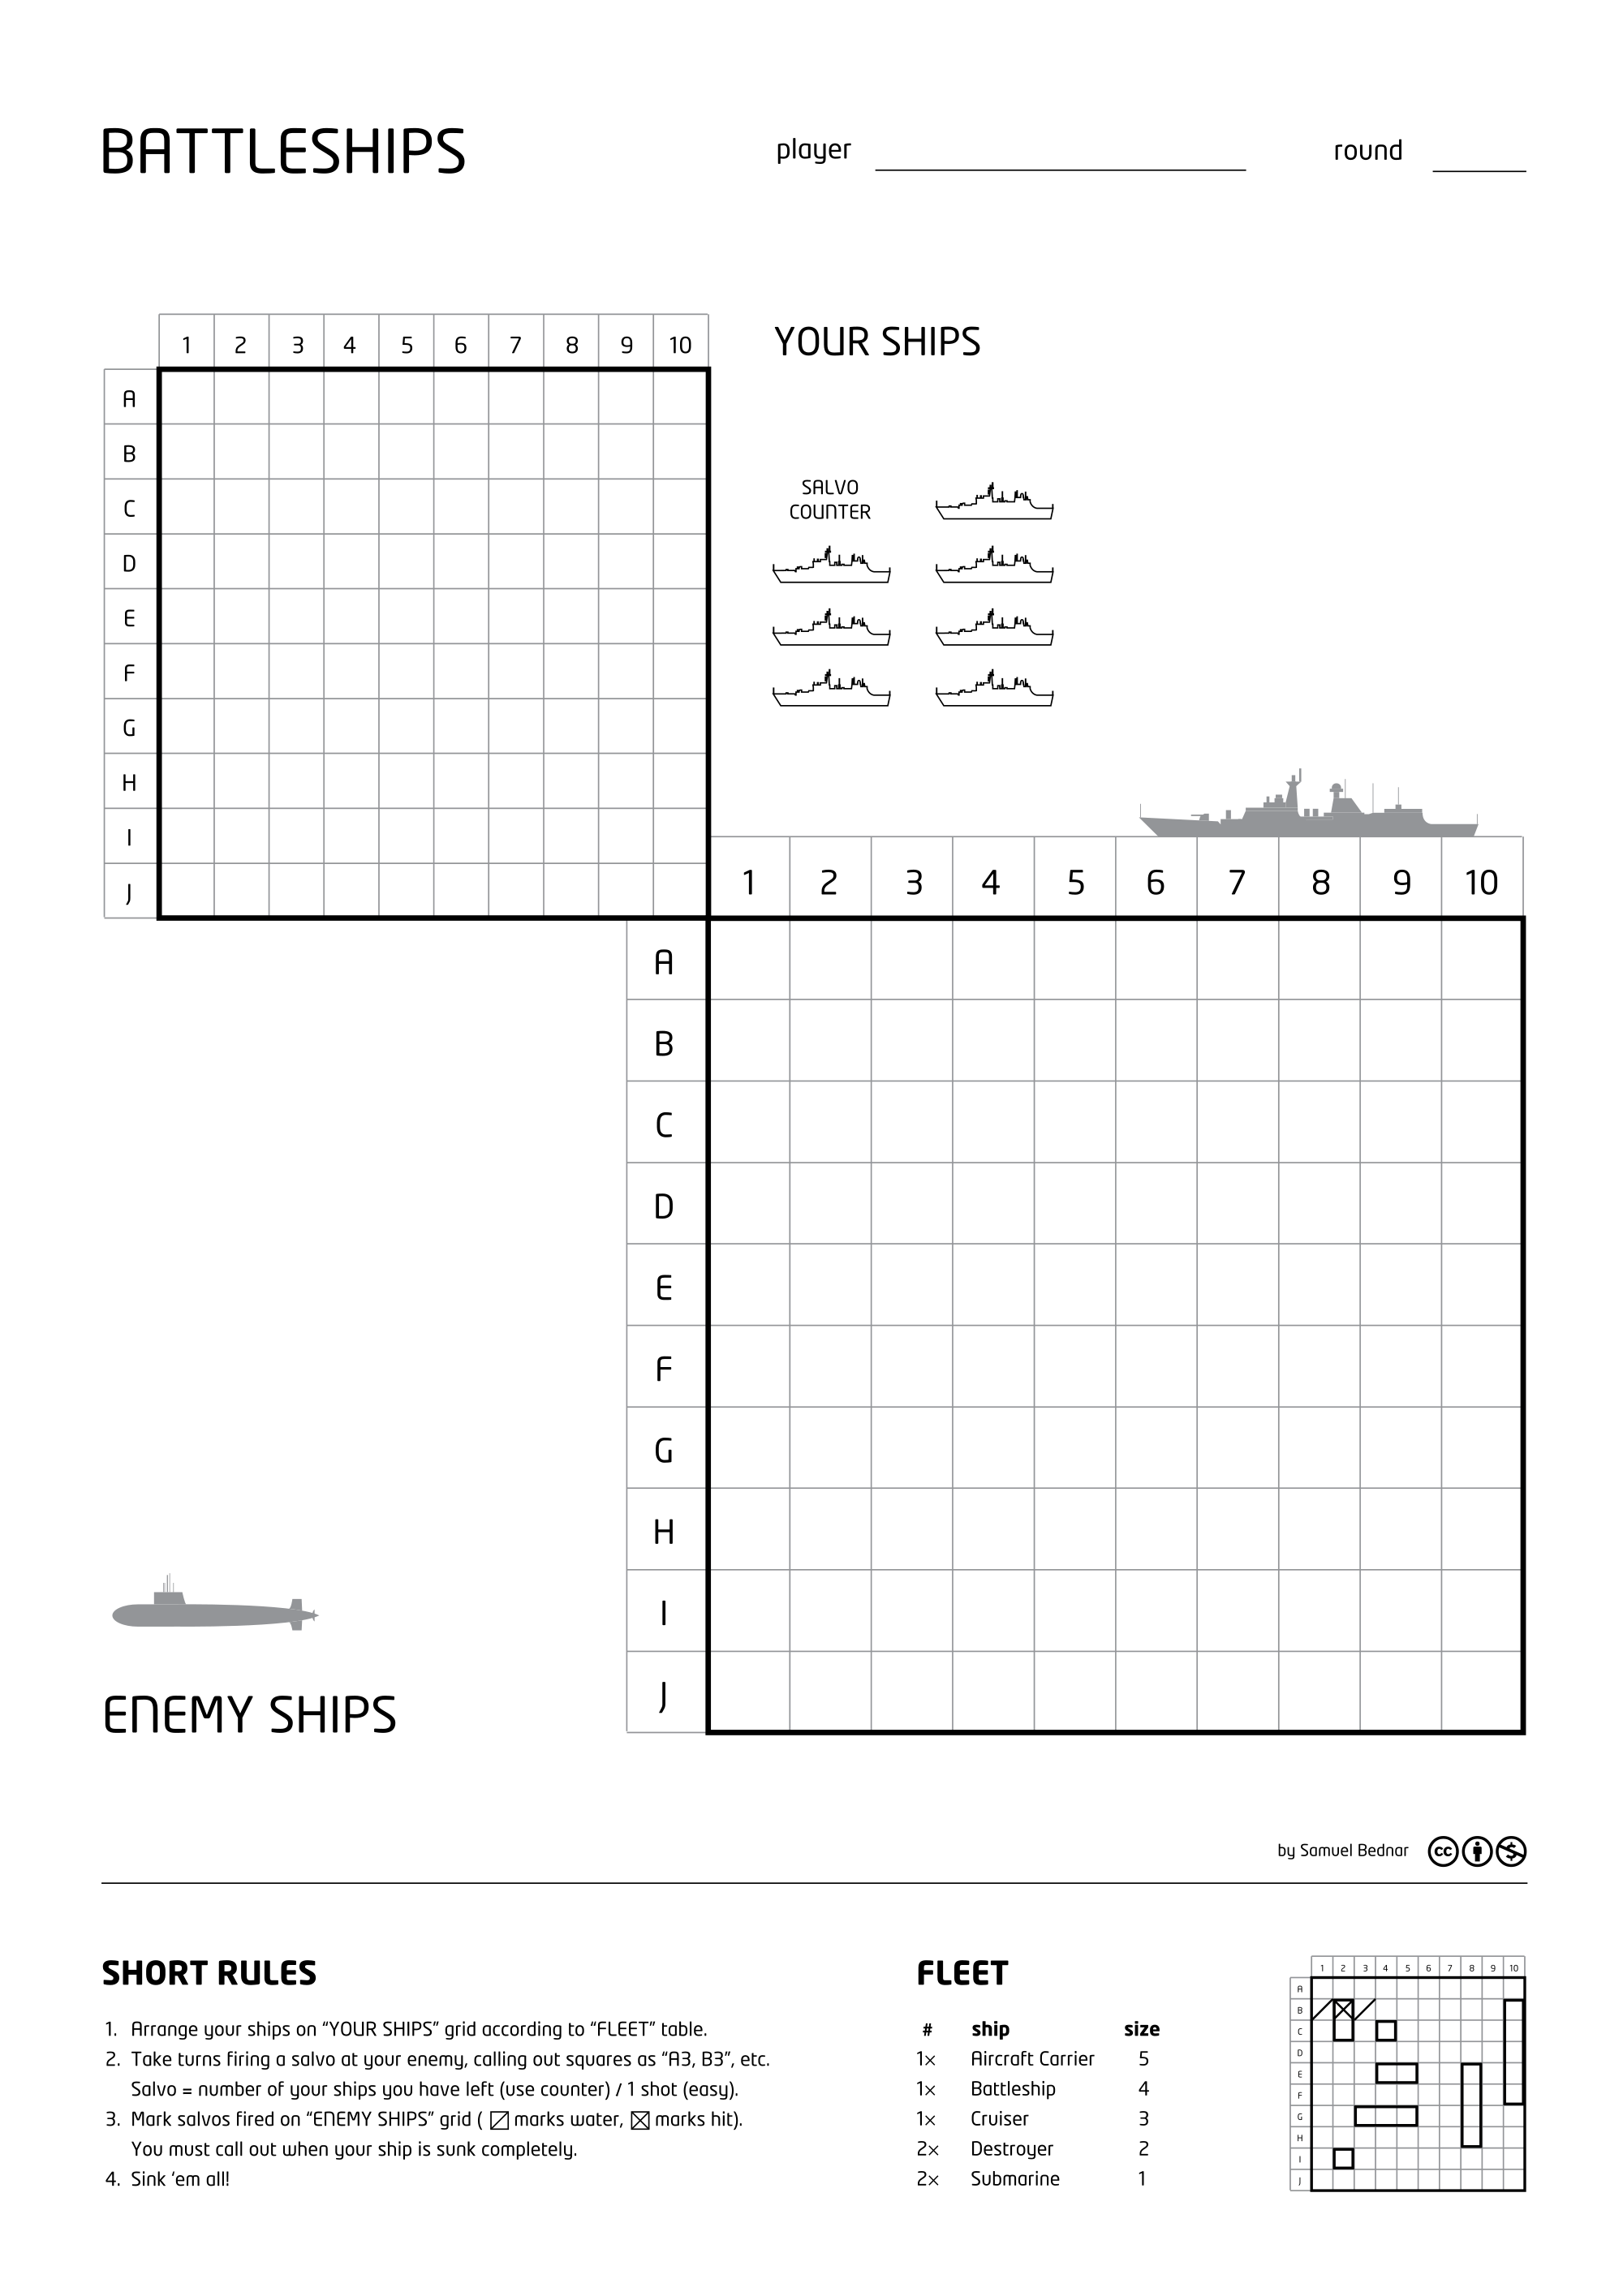 Creating revision board games. Navy clipart game